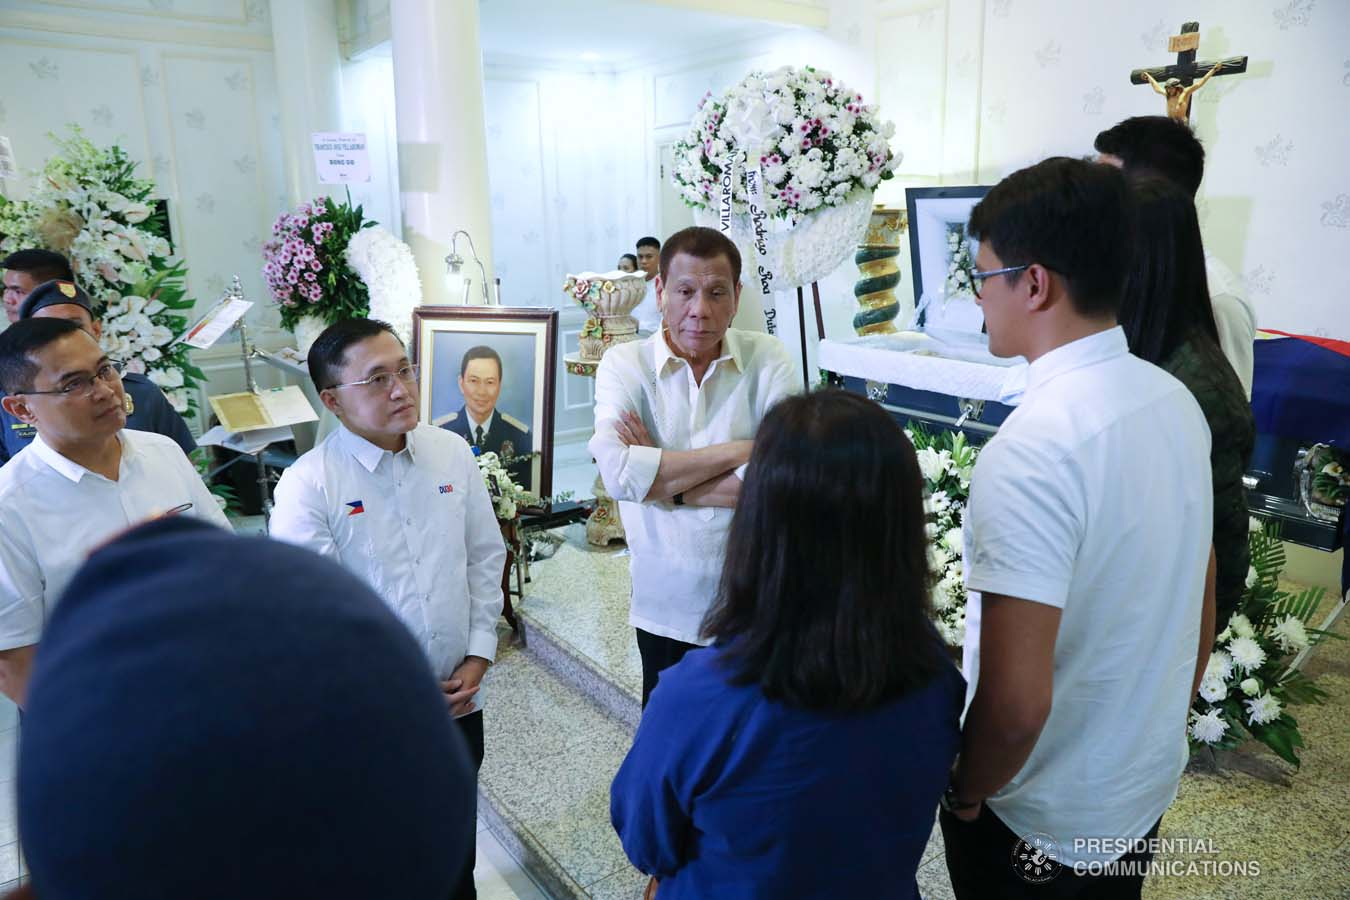 President Rodrigo Roa Duterte condoles with the family of the late Retired Police General Francisco Villaroman as he visited the wake at the Cosmopolitan Funeral Homes in Davao City on January 17, 2020. ROBINSON NIÑAL JR./PRESIDENTIAL PHOTO